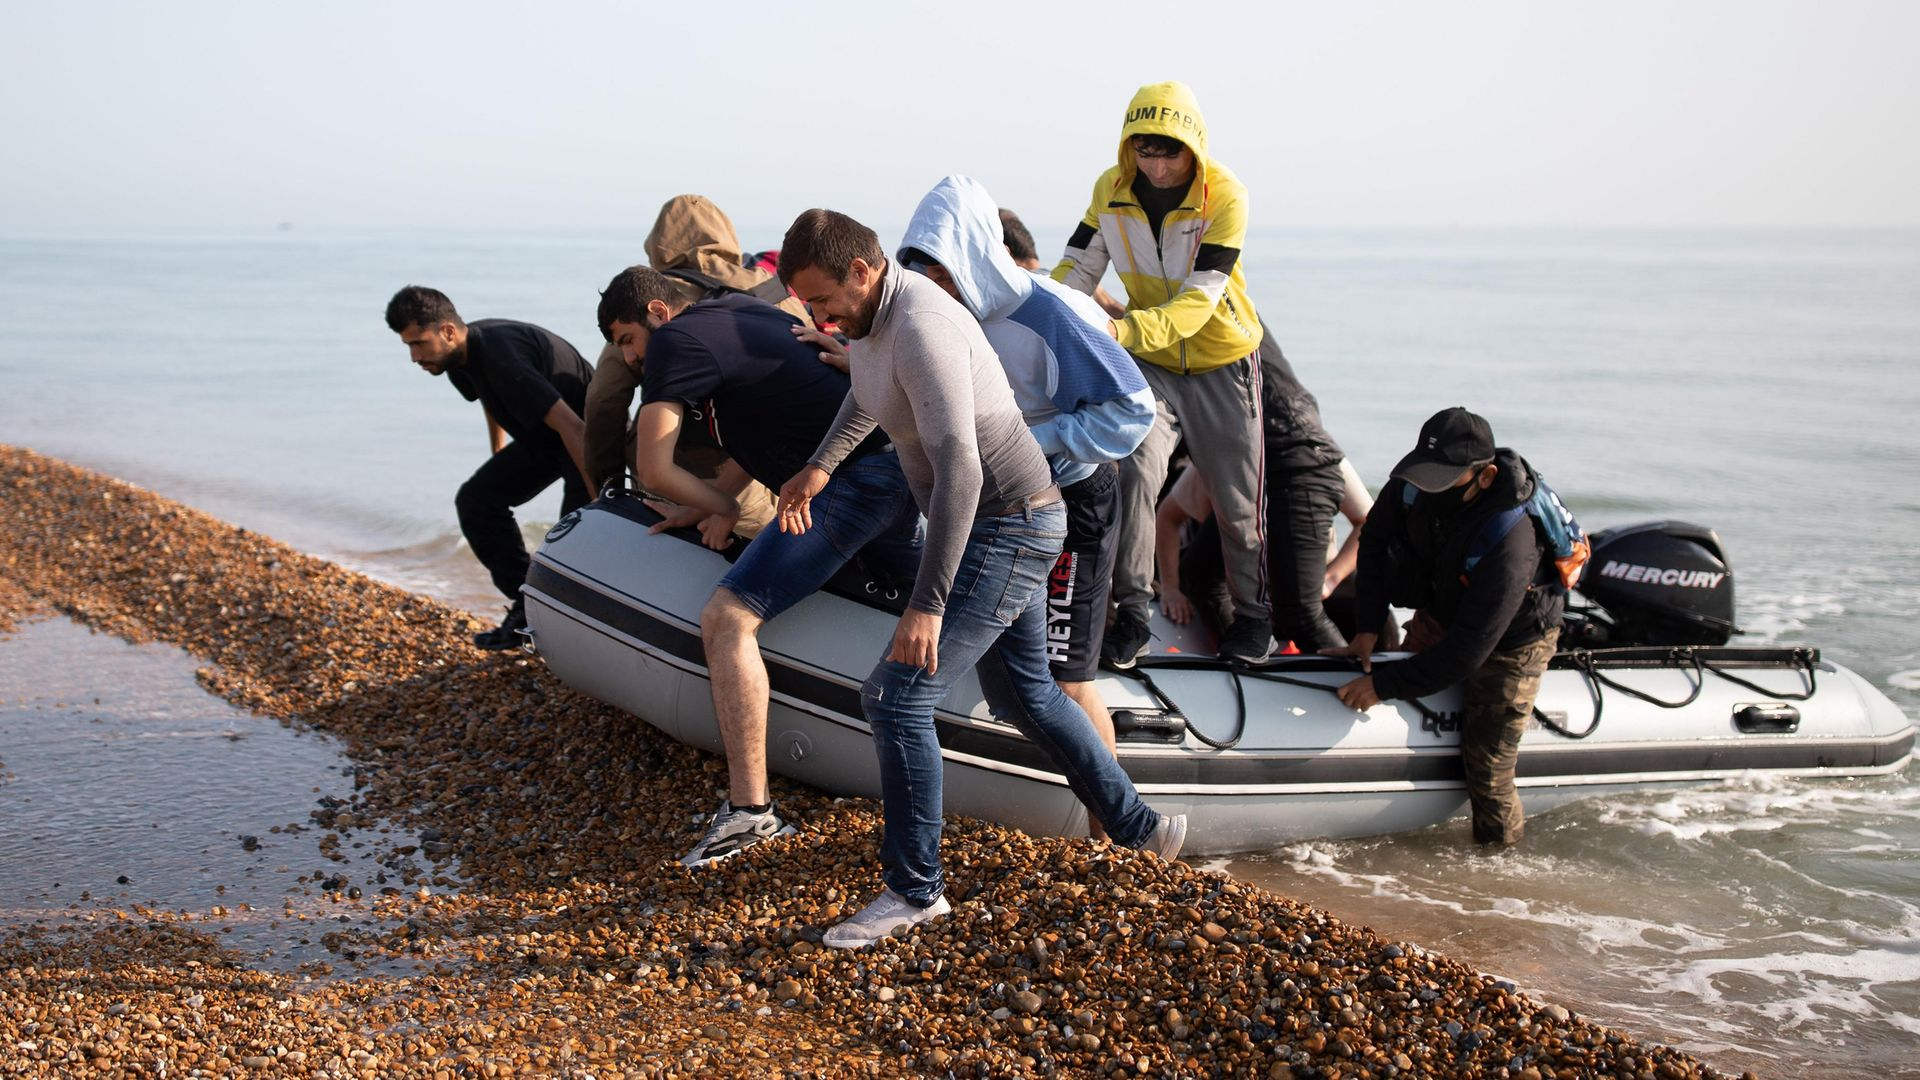 Migrants land on Deal beach last month after crossing the English channel from France in a dinghy - Credit: Getty Images